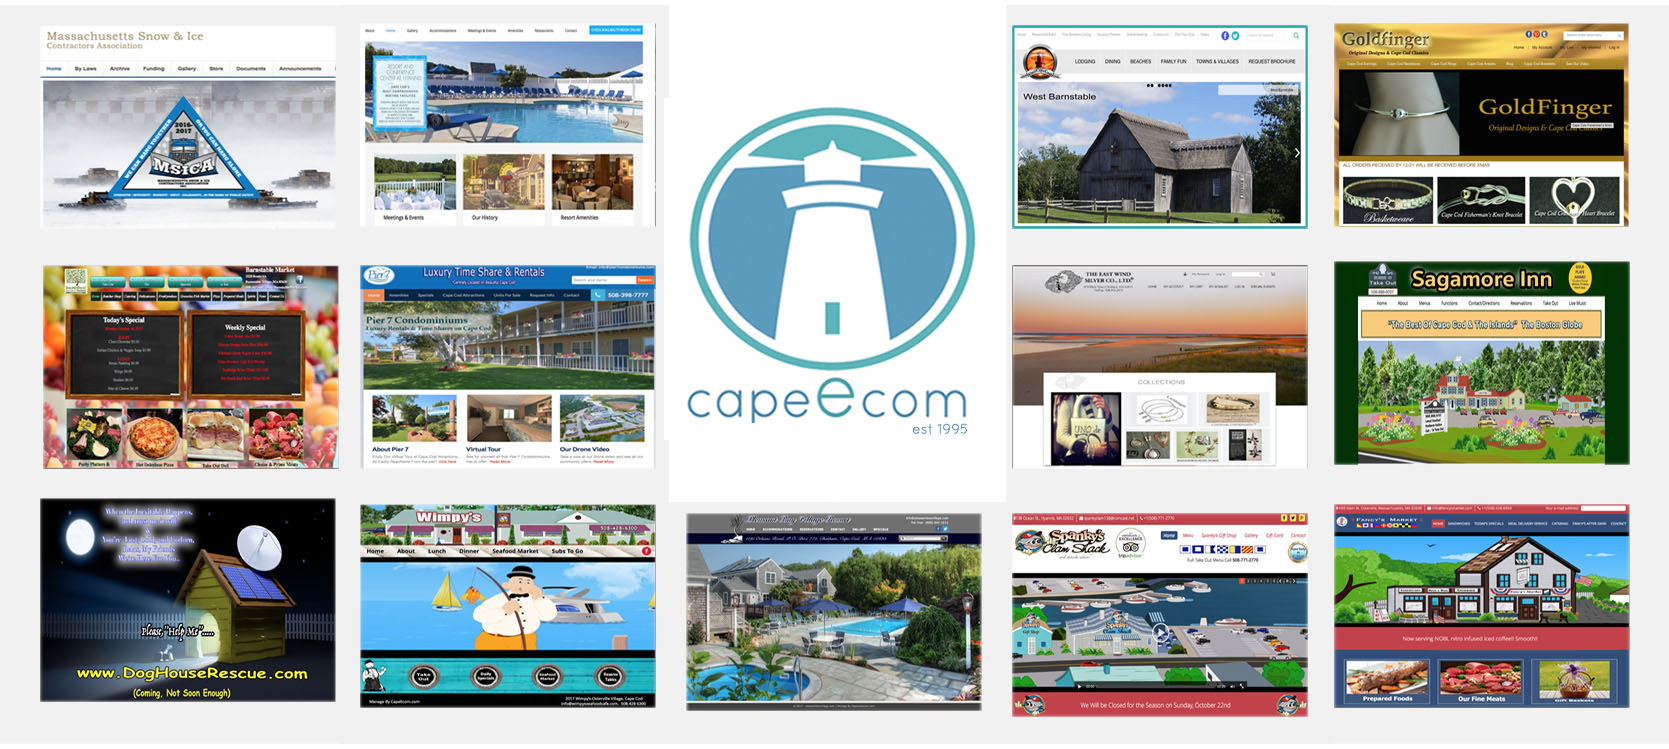 Cape_eCom_website_design-Recovered